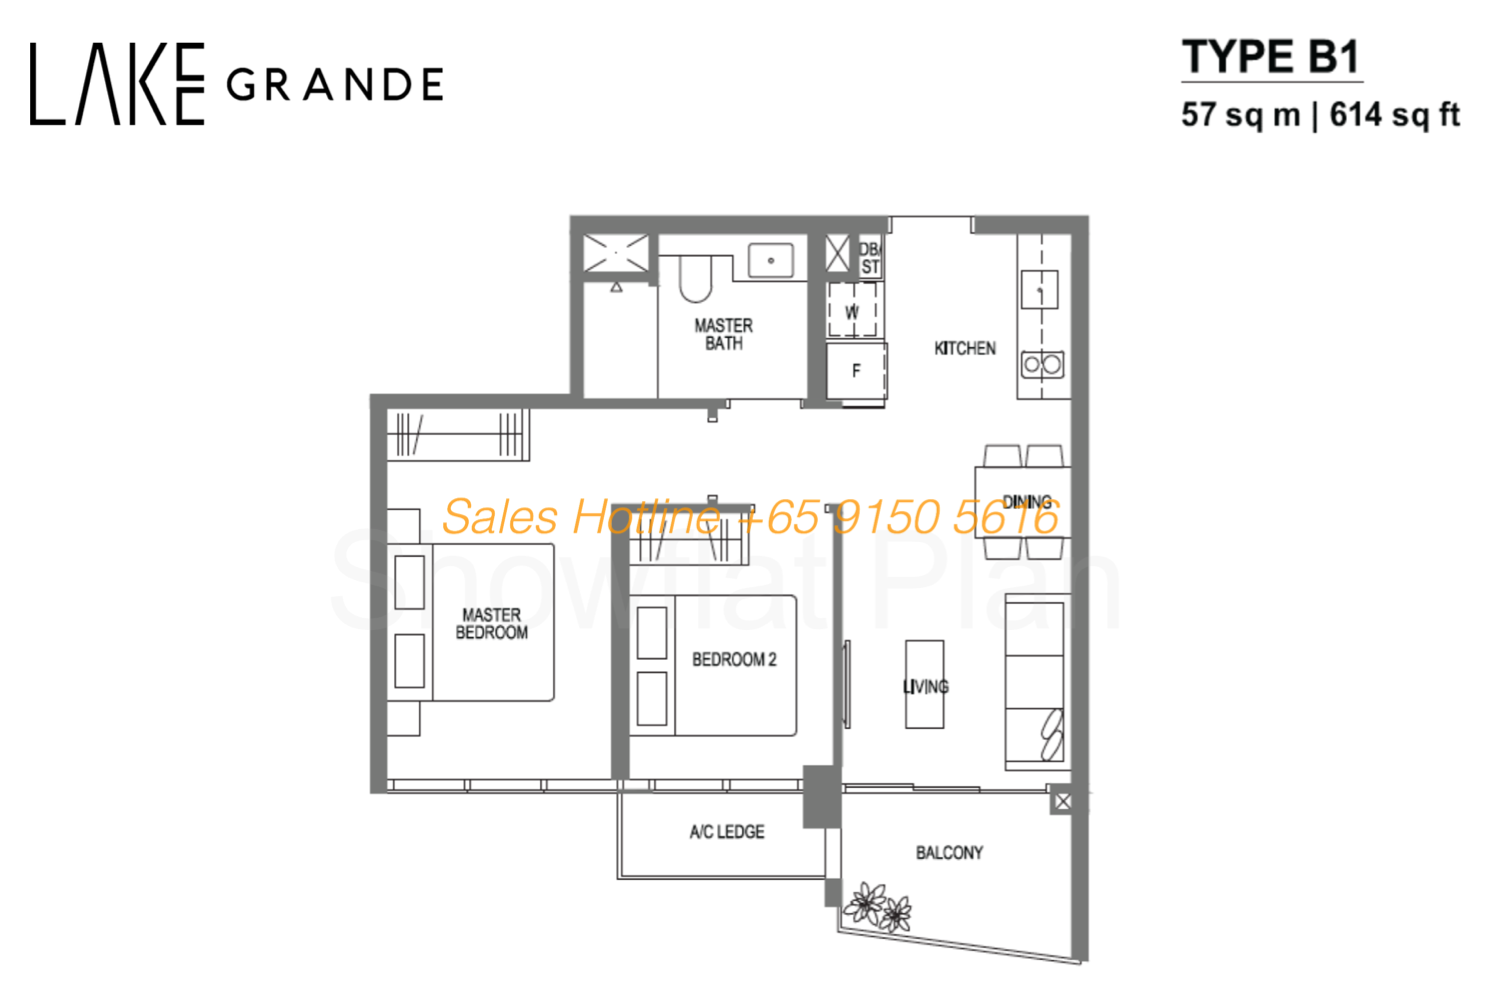 Lake Grande Floor Plan 2 Bedroom